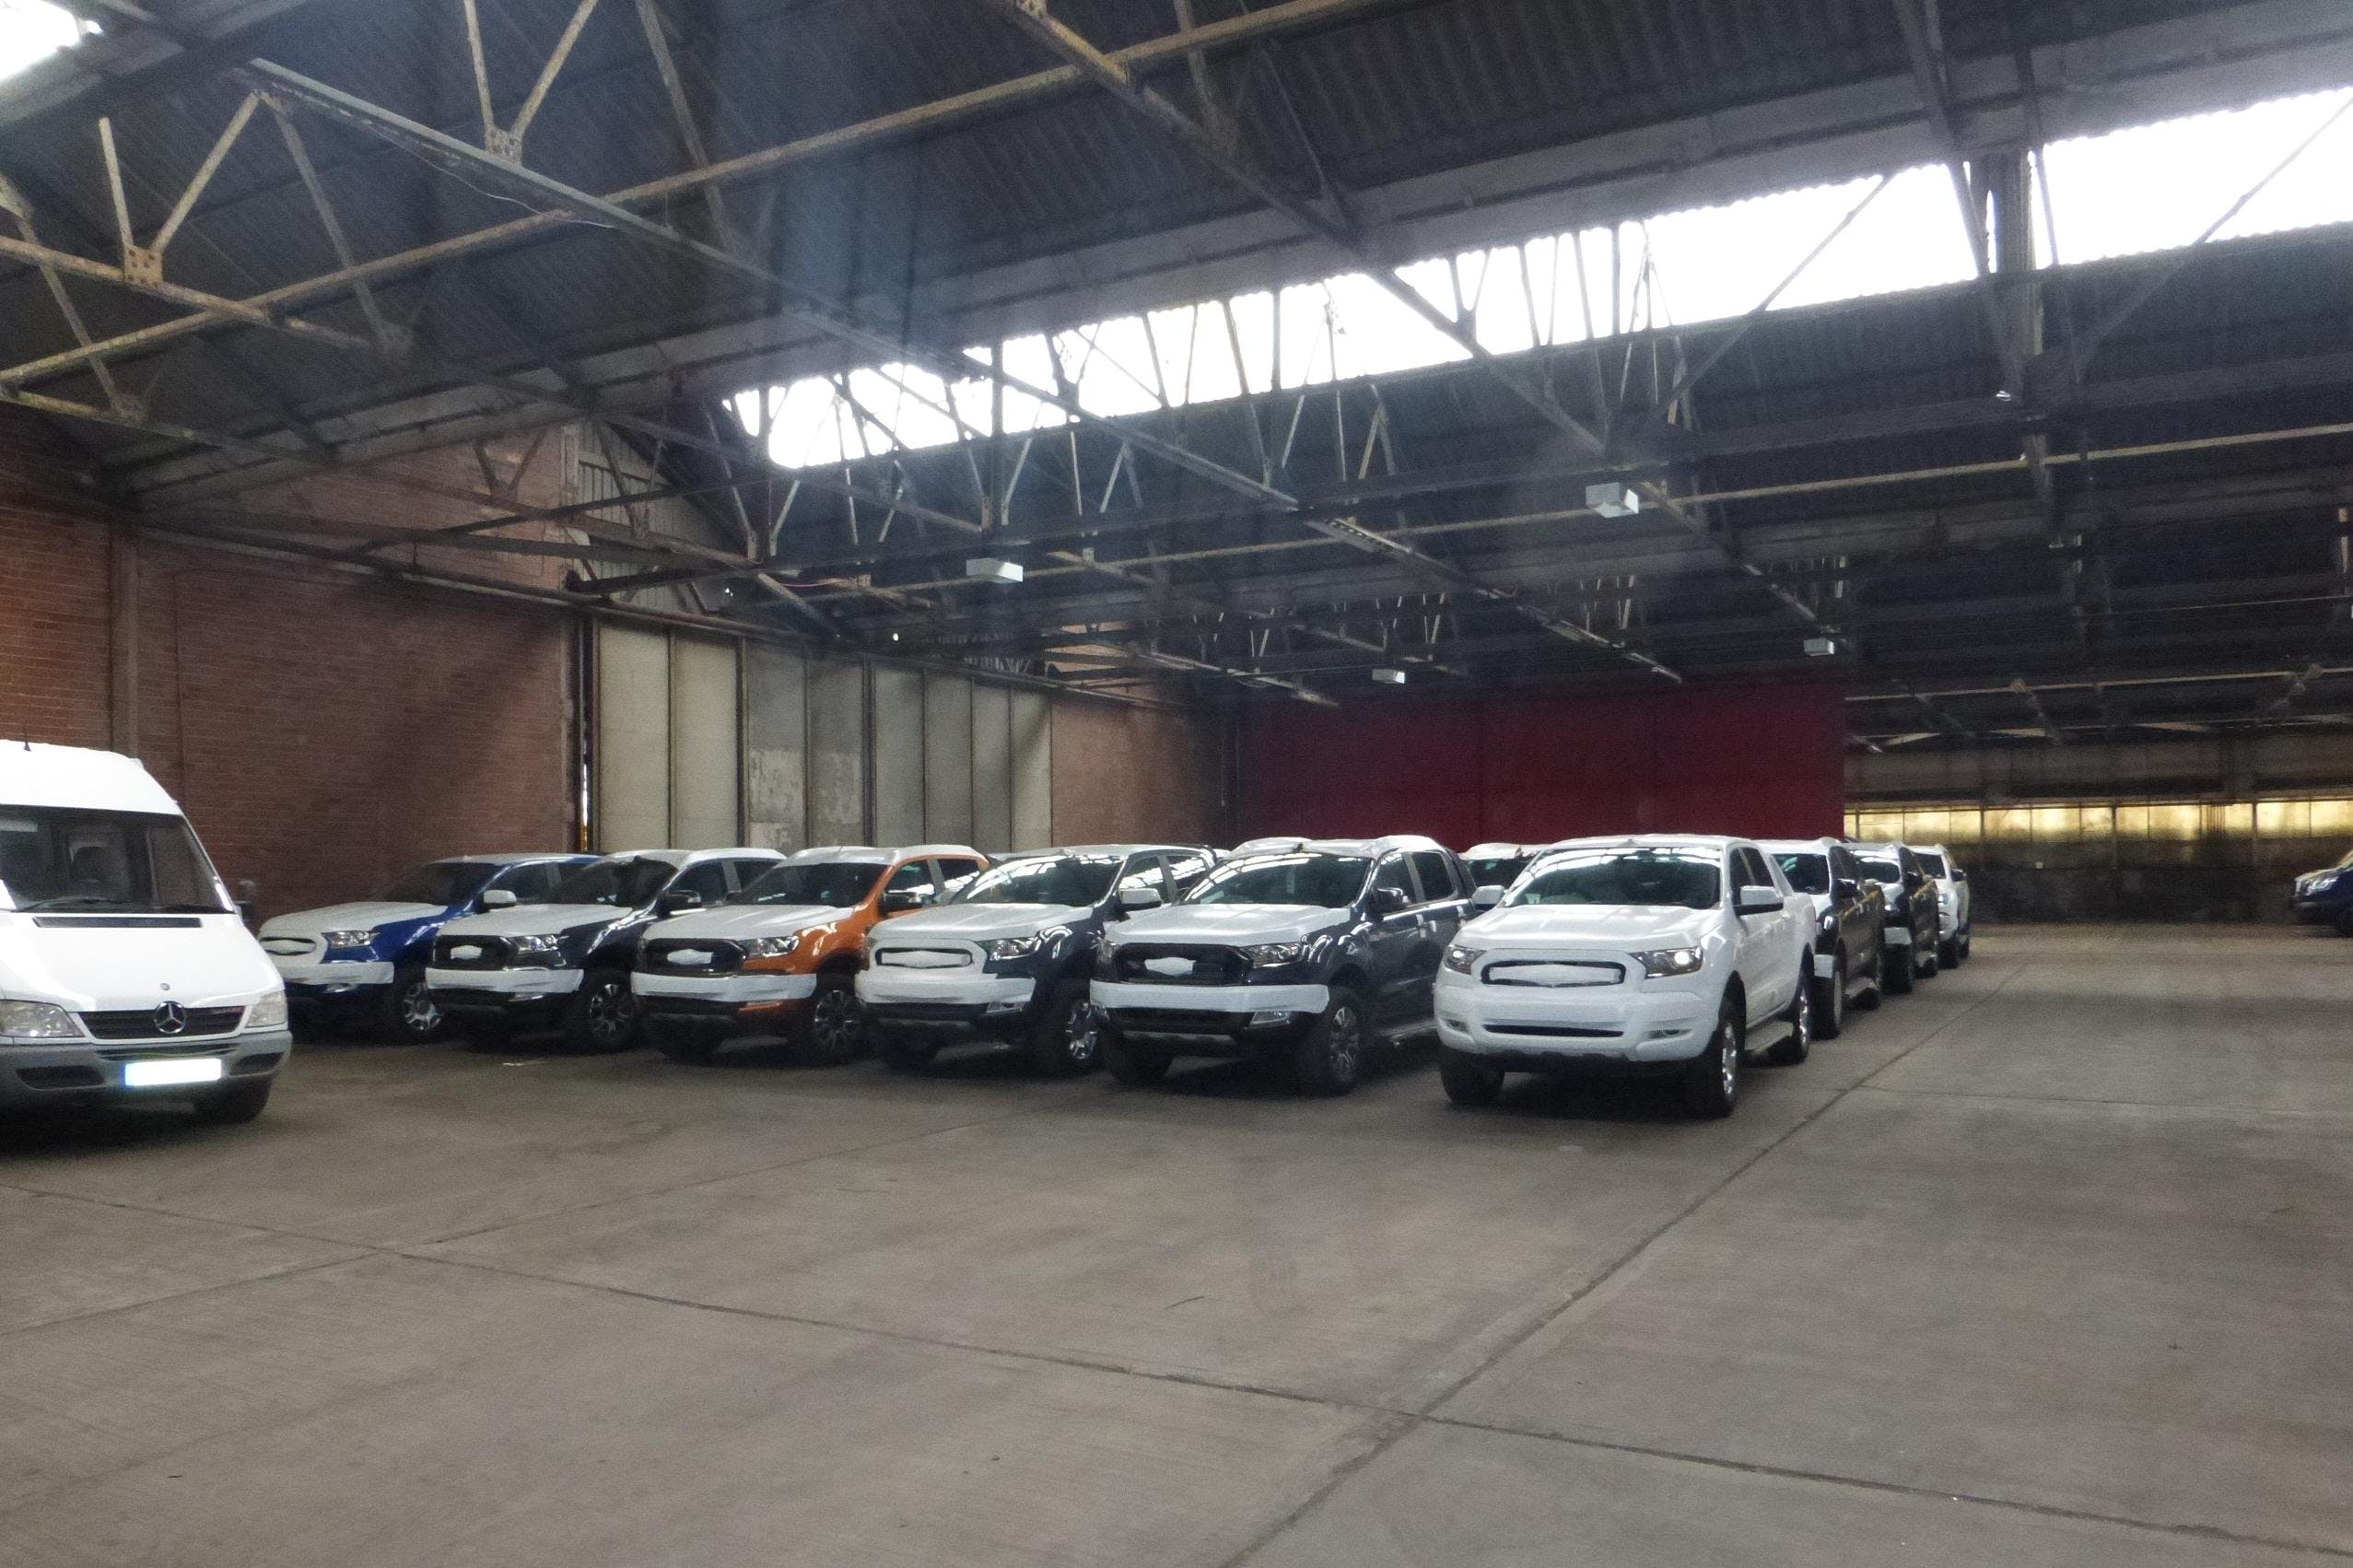 Milethorn Works, Milethorn Lane, Doncaster, Warehouse & Industrial To Let - Interior